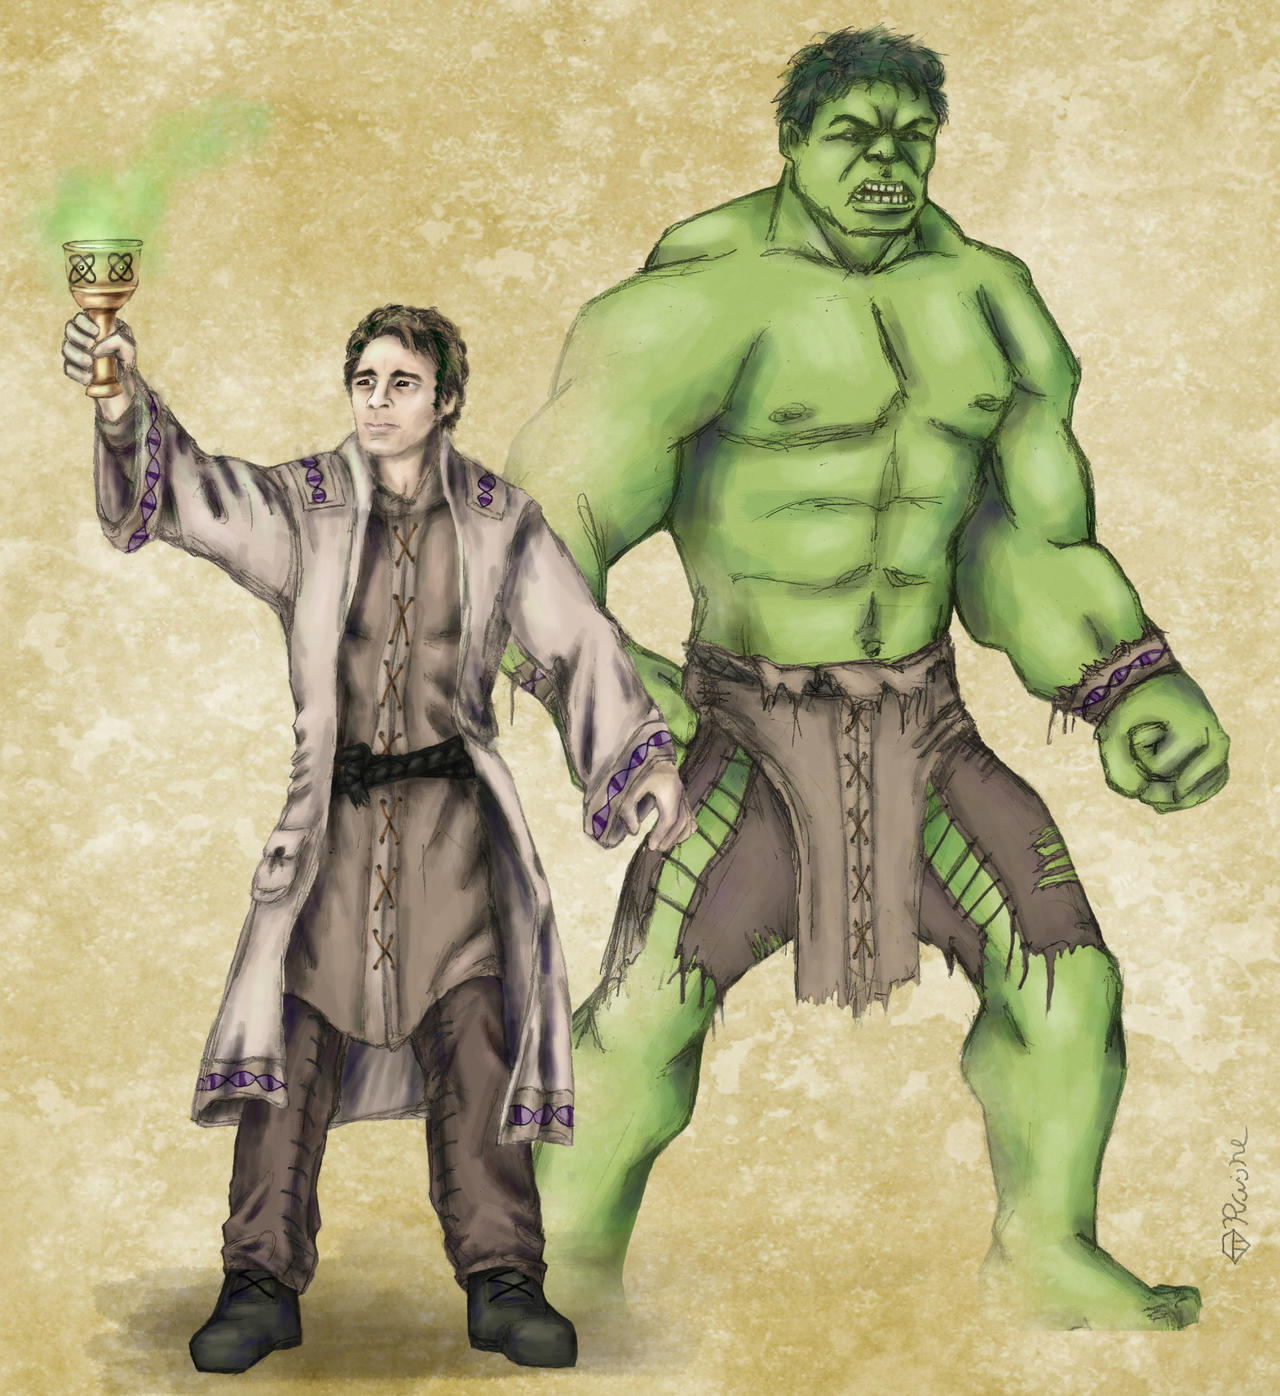 Képek - Page 6 Dnd_avengers___bruce_and_hulk_by_mcat711-d626ow5